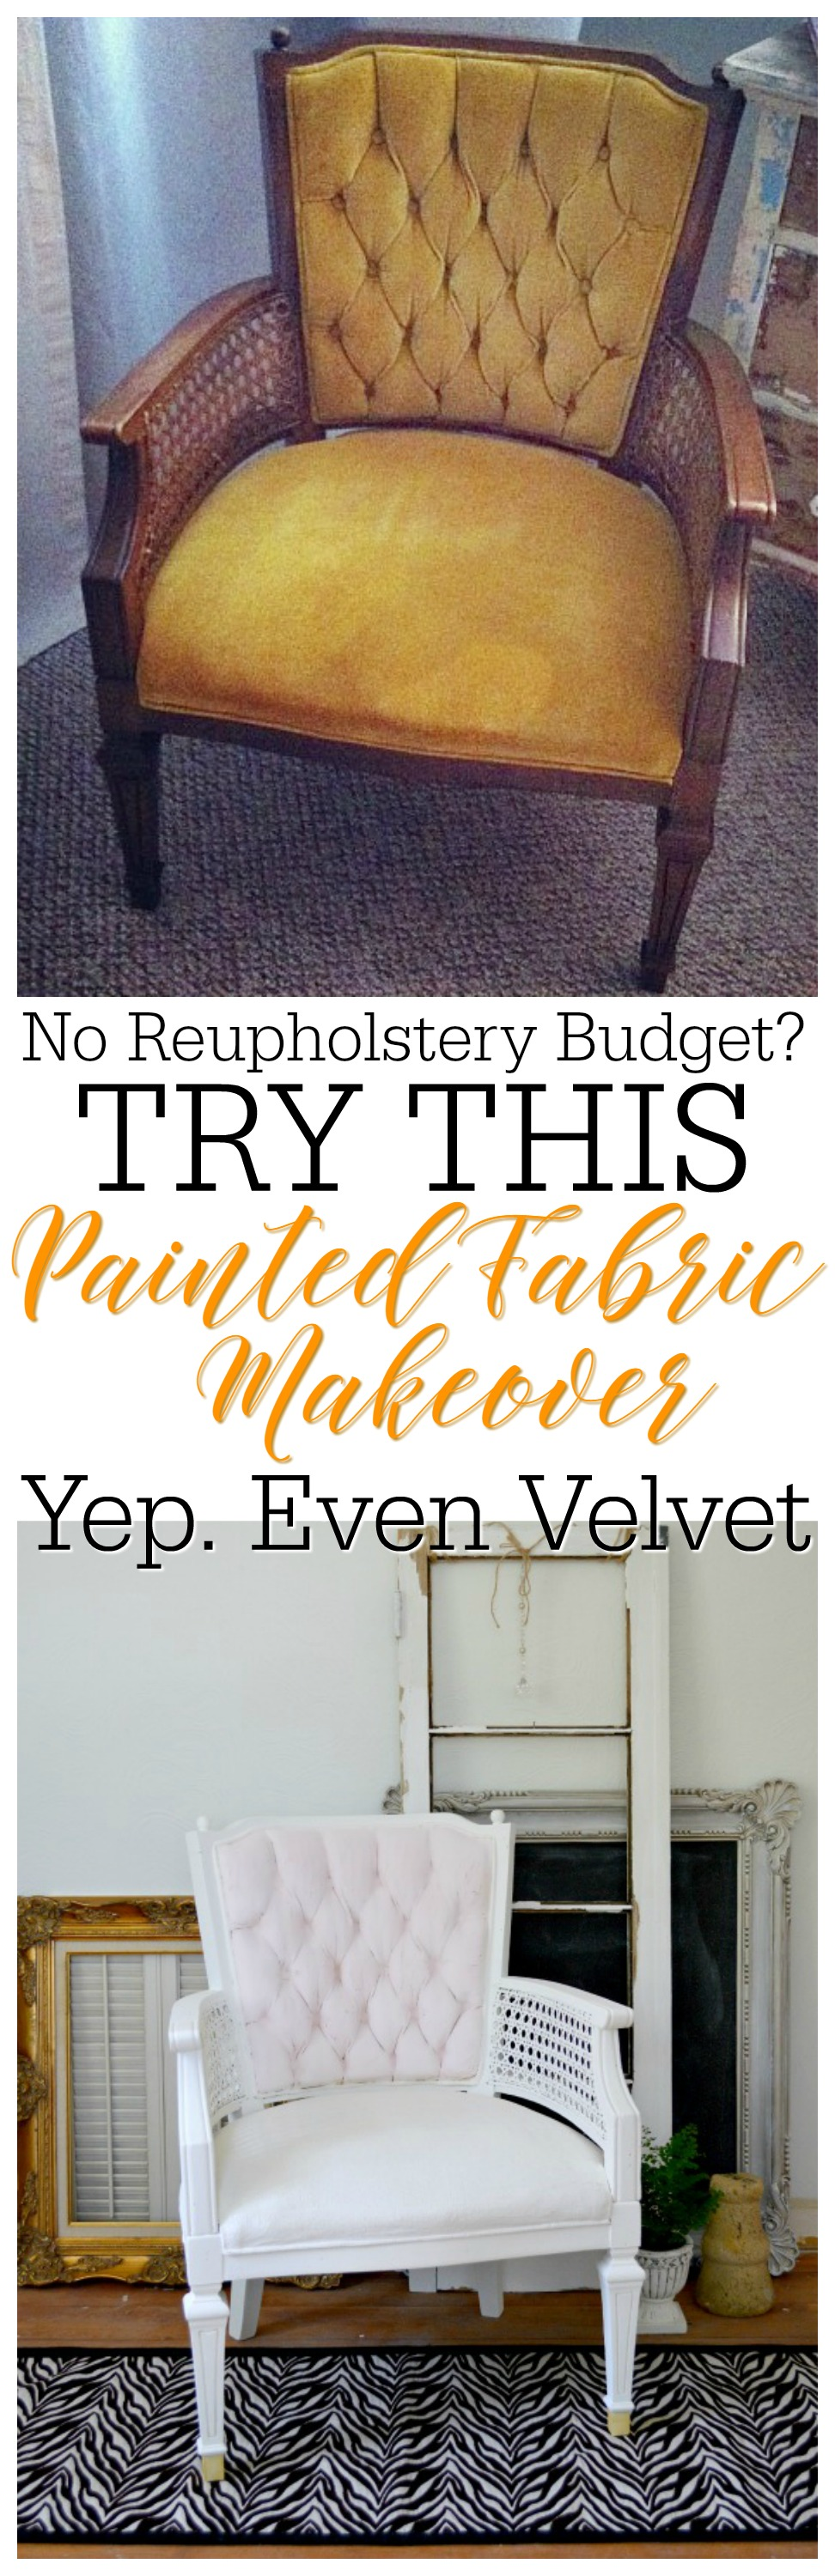 diy-painted-velvet-upholstery-tutorial-before-and-after-makeover-www-foxhollowcottage-com-tips-painted-velvet-upholstery